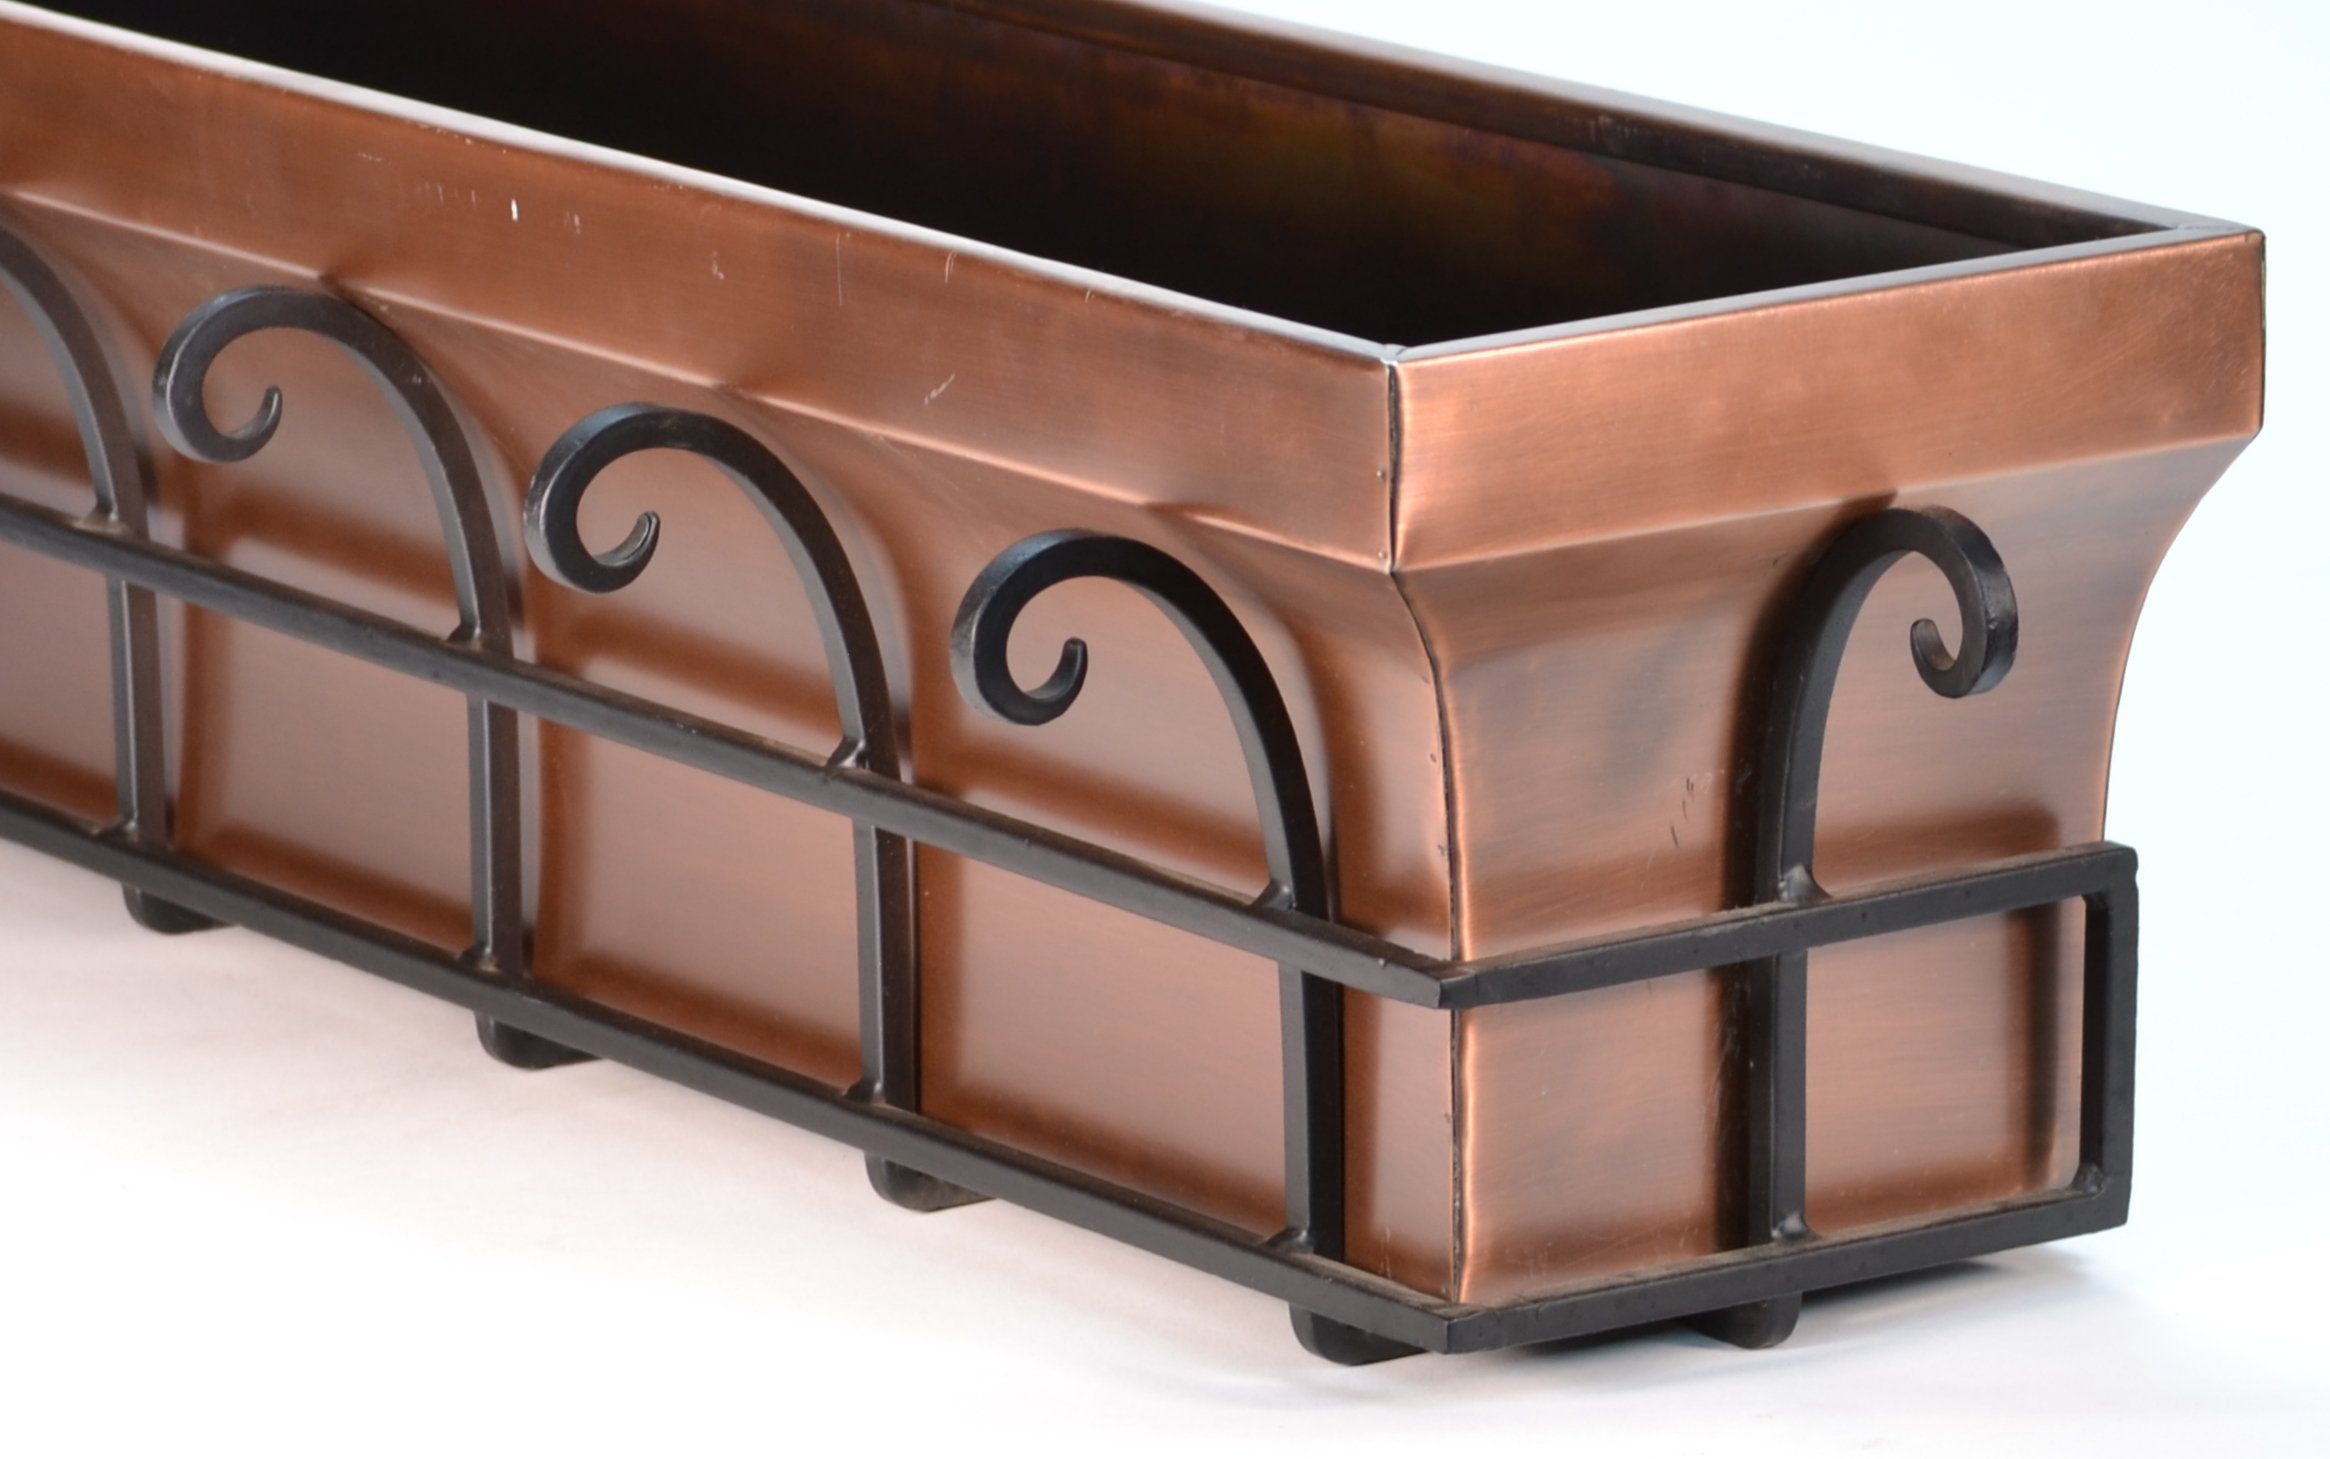 H Potter Copper Window Flower Garden Box Planter (36 Inch Length) by H Potter